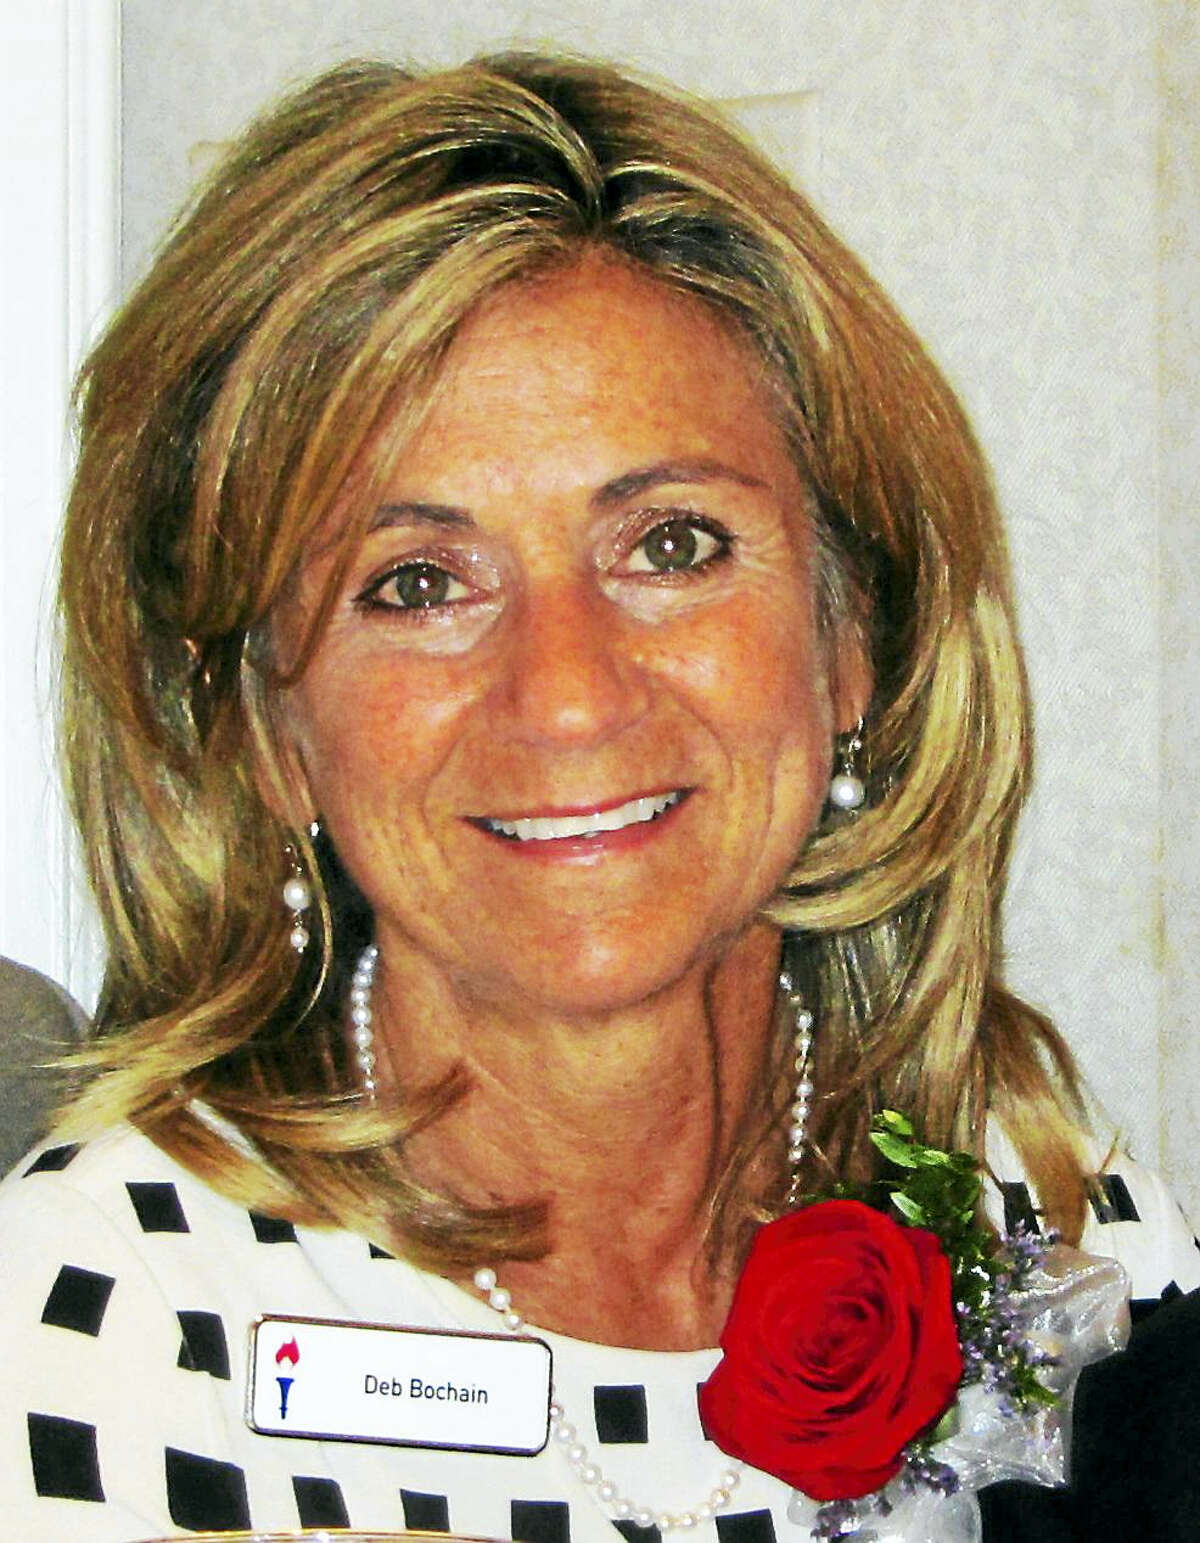 Deb Bochain will be honored with Middlesex United Way's highest honor, the Community Service Award, Jan. 28 at the organization's annual meeting.